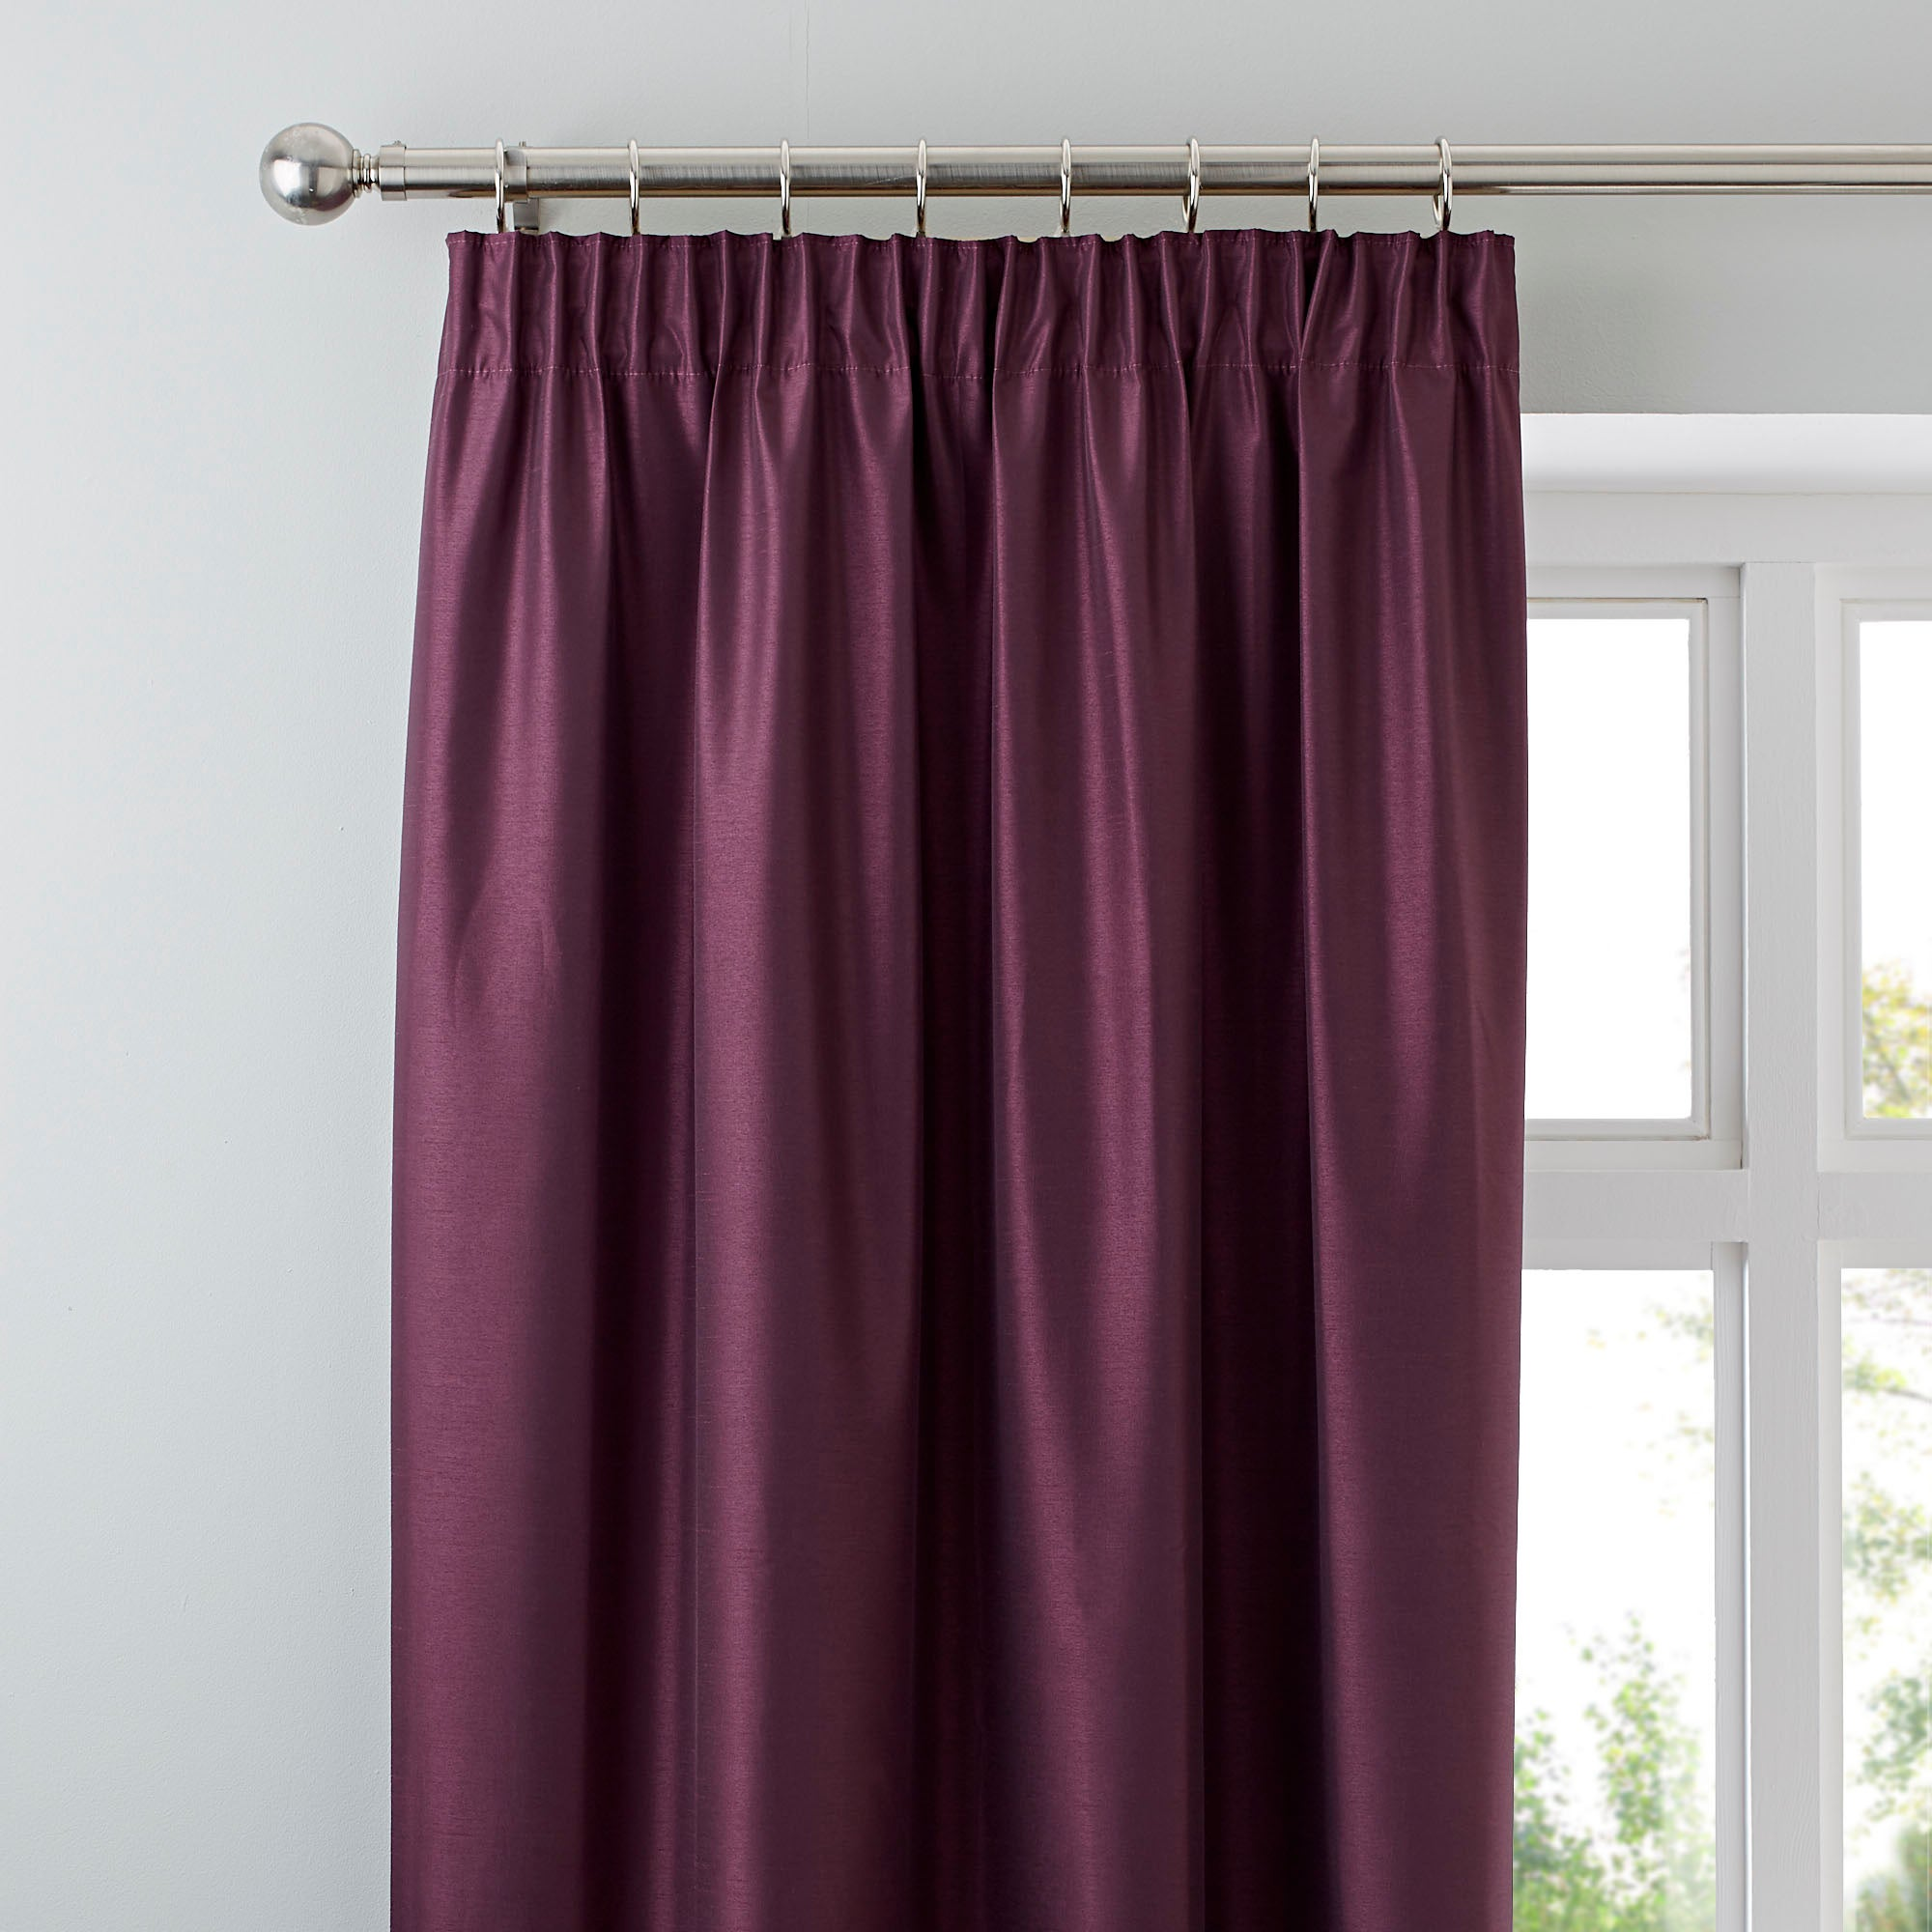 Aubergine Nova Blackout Pencil Pleat Curtains